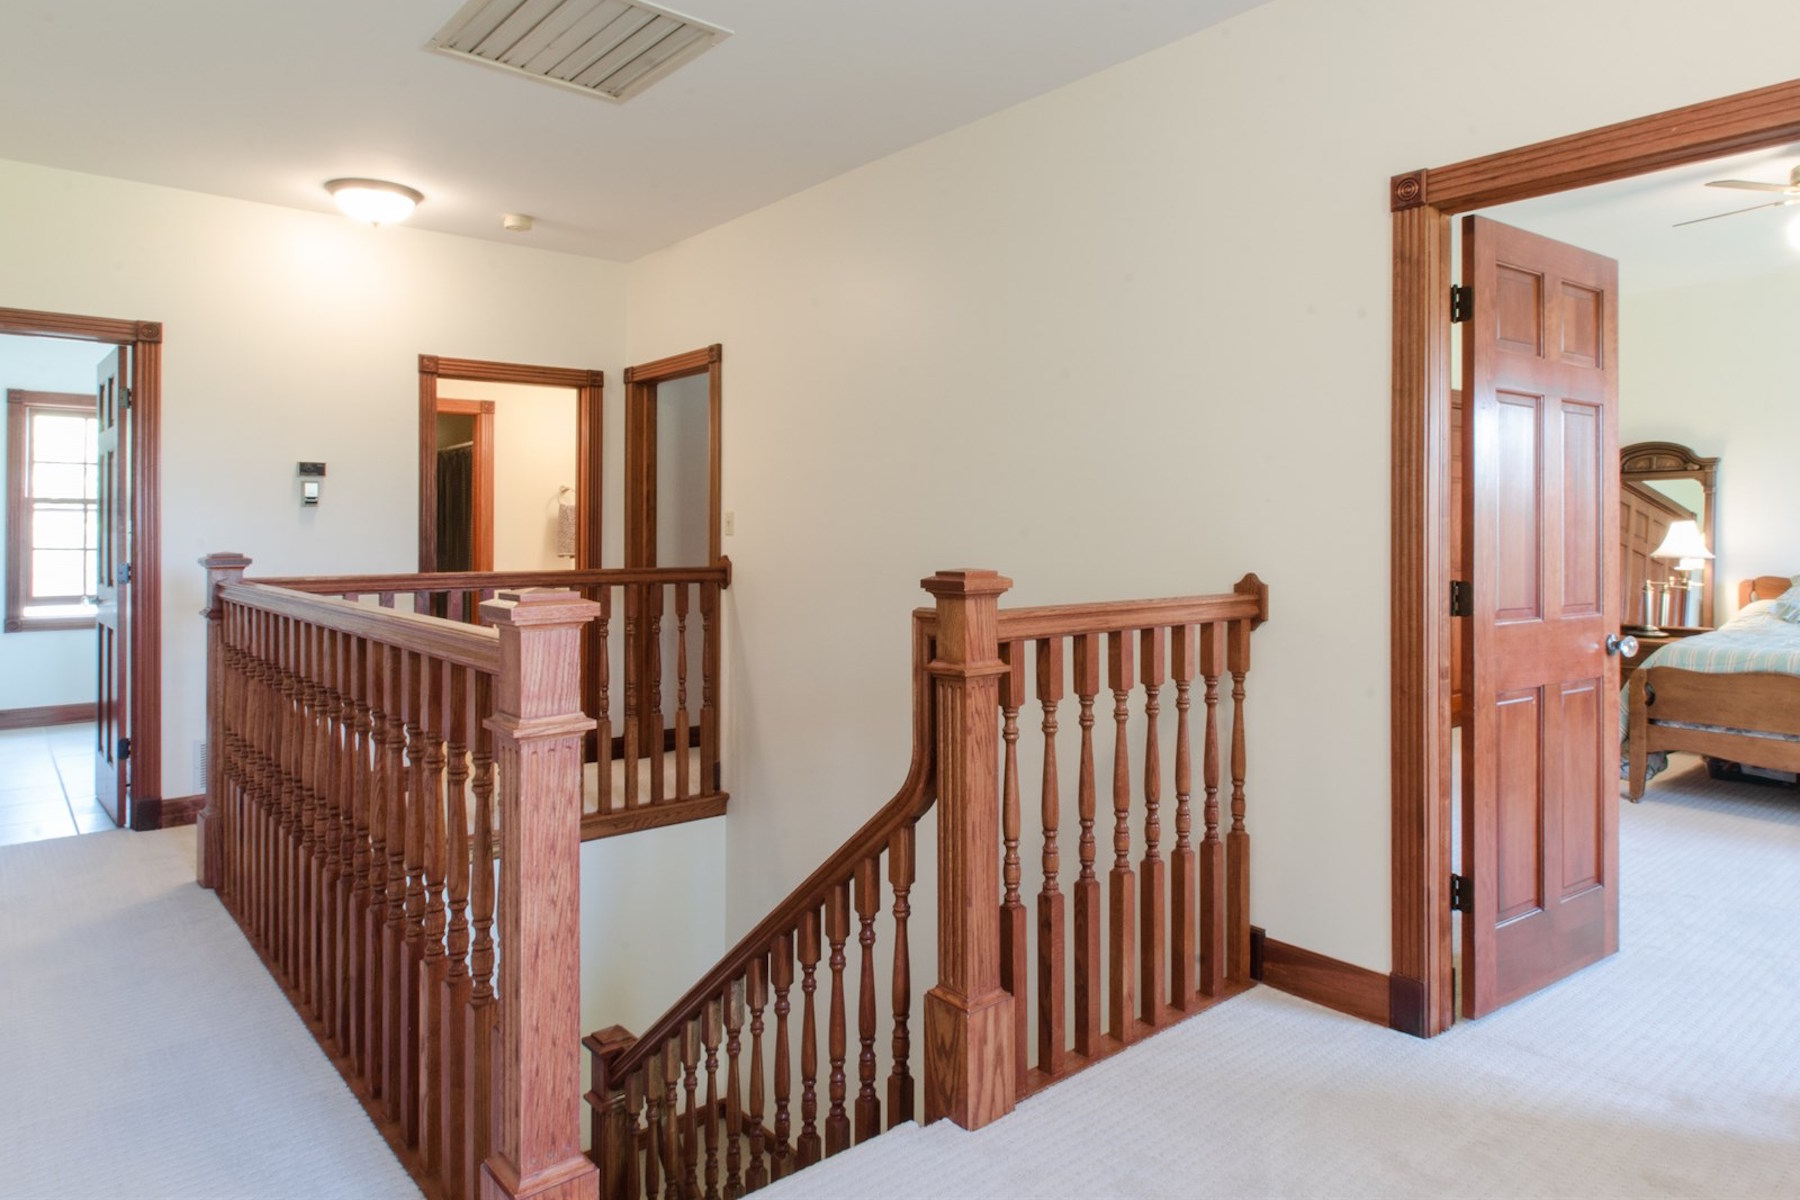 Additional photo for property listing at Swamp Angel Farm 9928 Hillandale Rd. Richmond, Illinois 60071 United States